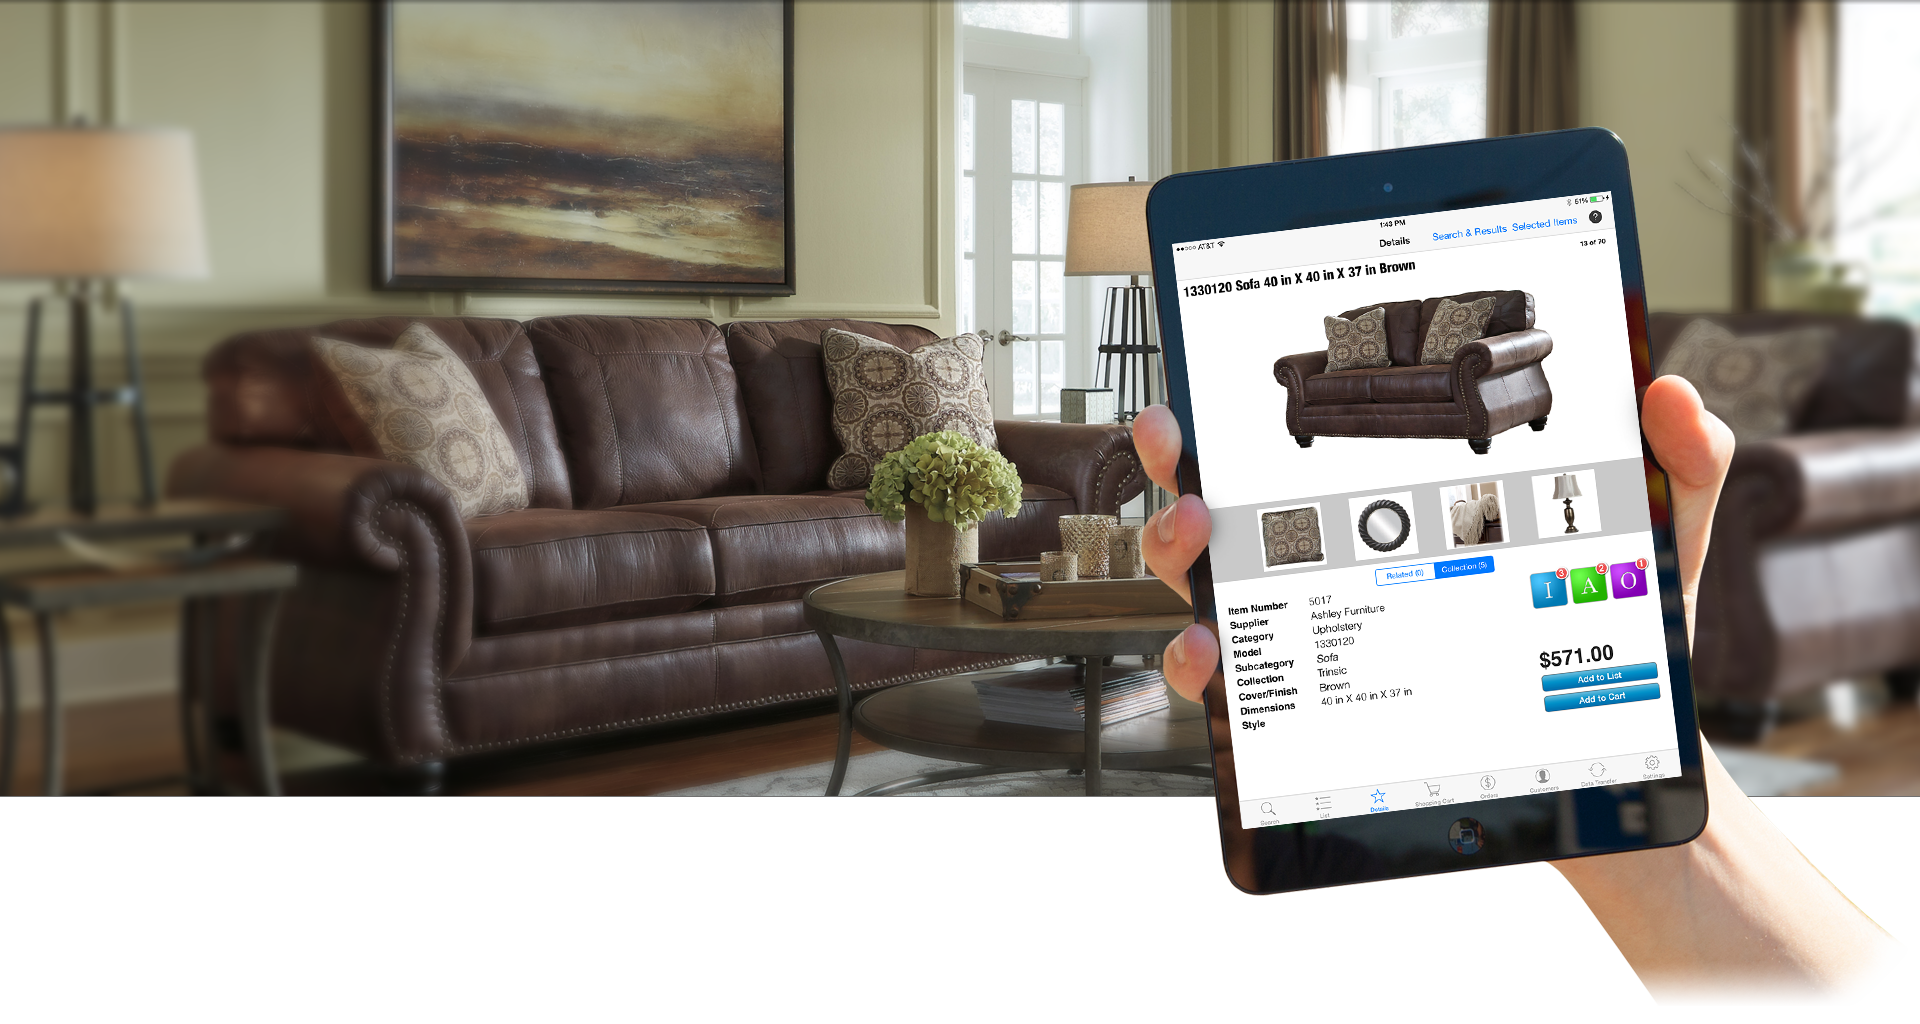 Furniture Wizard The Ultimate Solution For Furniture Inventory - Free invoice website online discount furniture stores